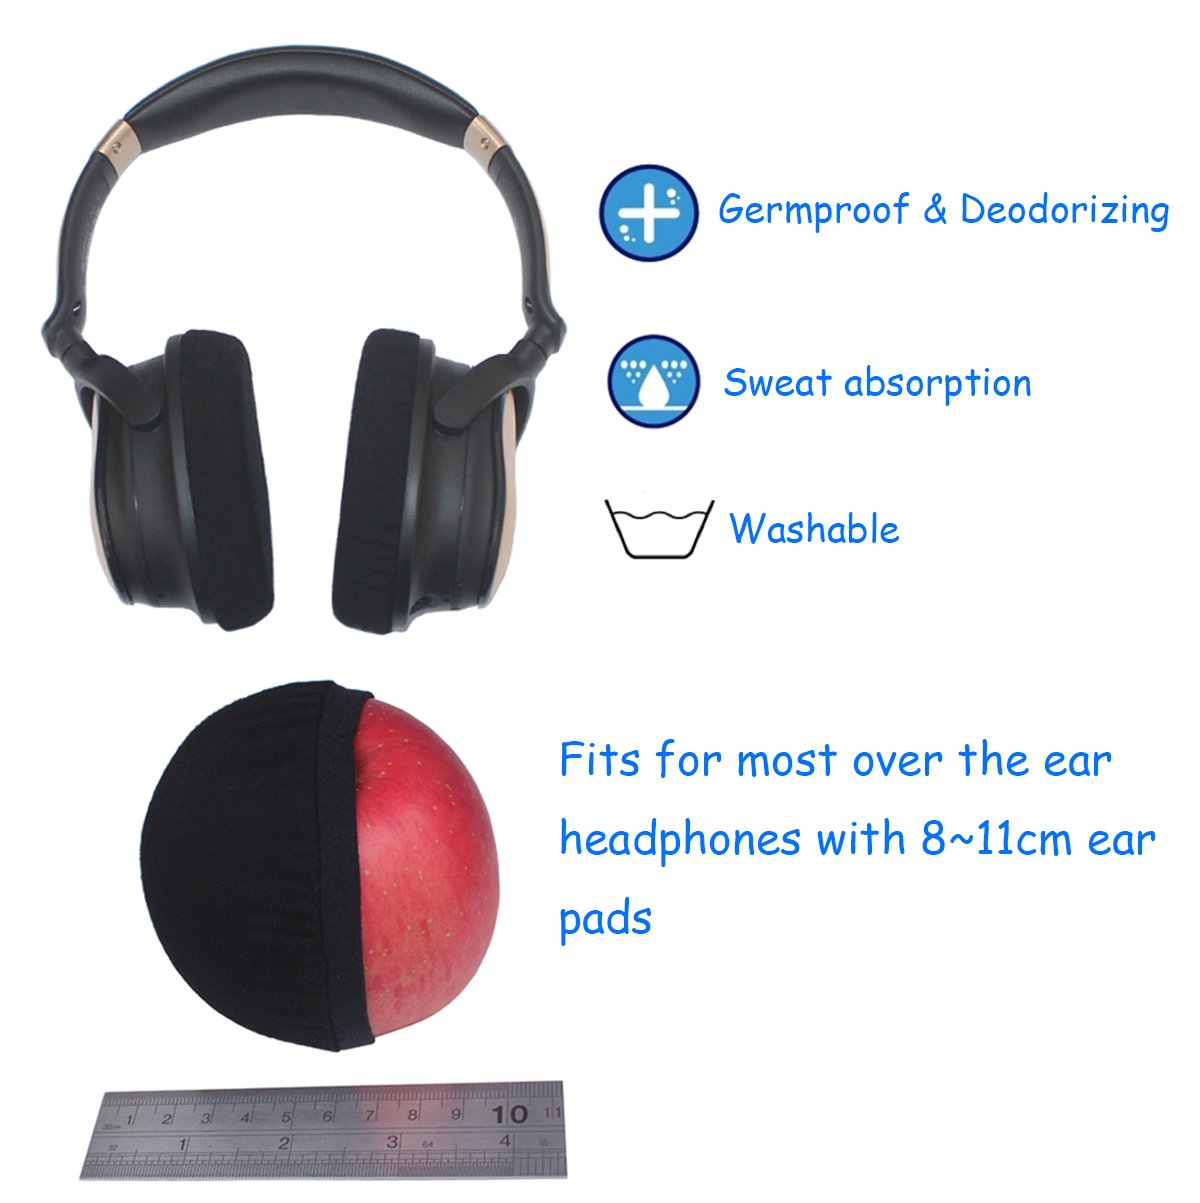 Bingle Super Stretch Headphone Covers Sweat Absorption Ears And Speakers Protector Washable Germproof Deodorizing Ear Cover For Most 811cm Around Headphones